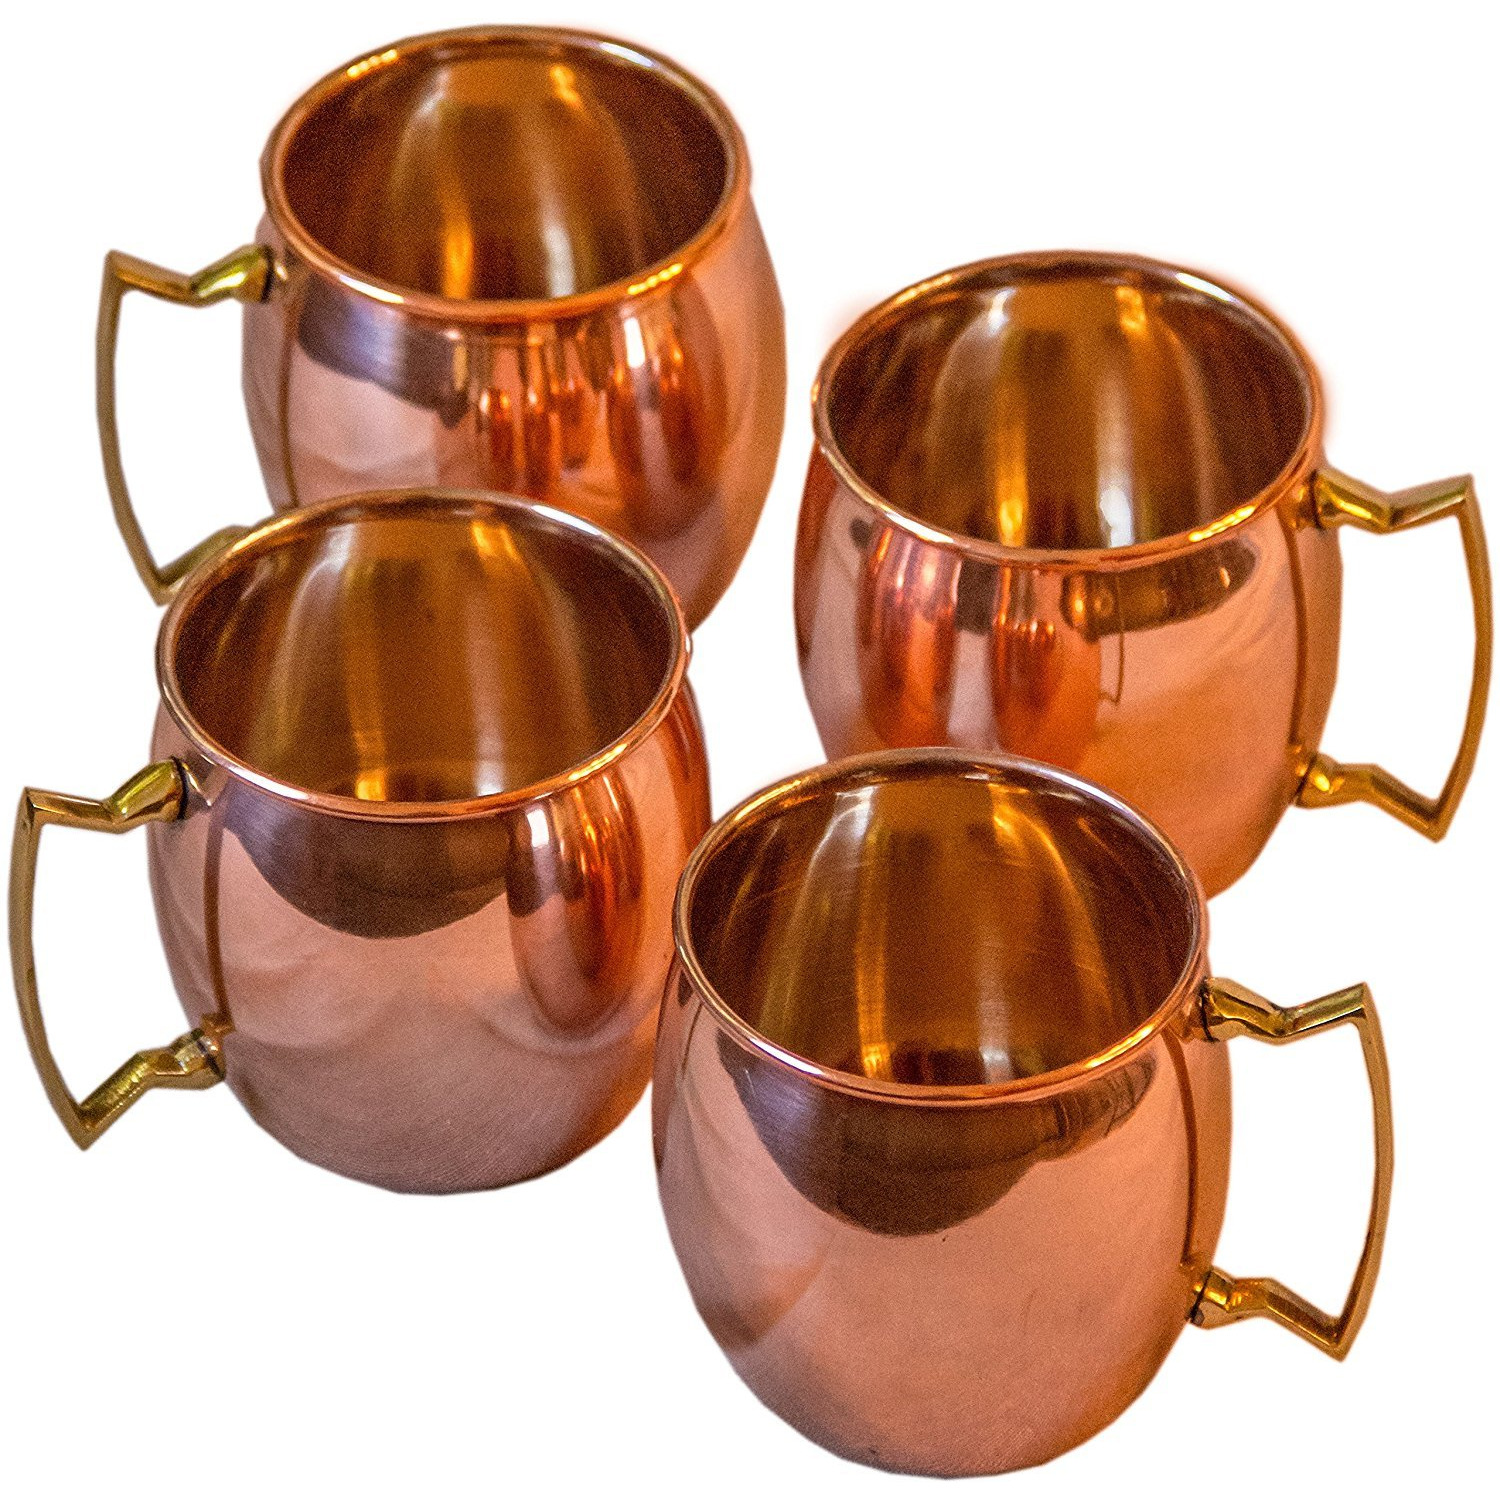 Winmaarc 100 % Solid Pure Copper Mugs Smooth 16 oz Set of 4 Cups